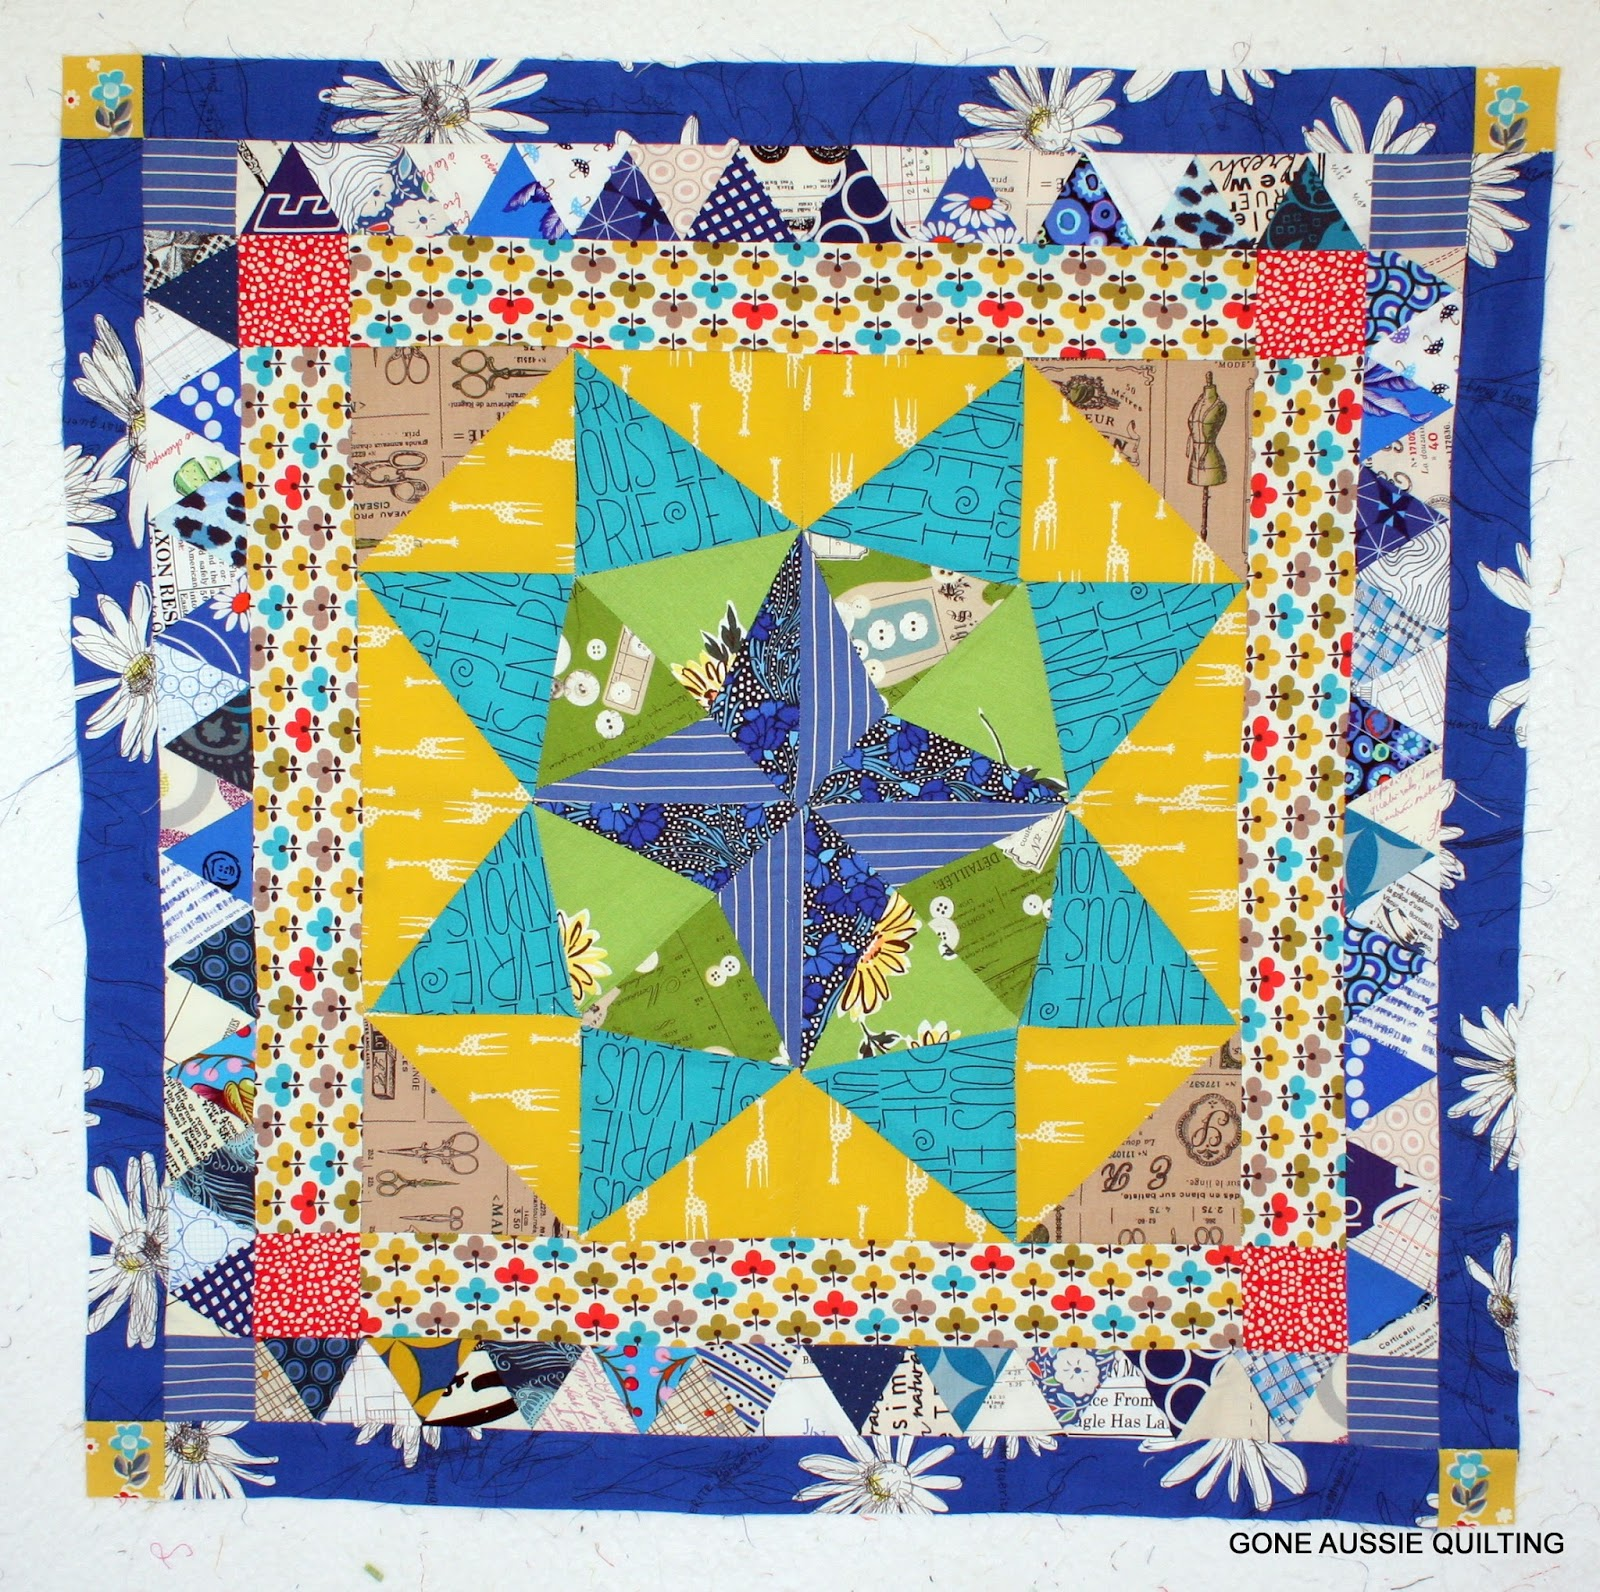 unfinished here blogged me quilt img medallion centre p originally mystery sew